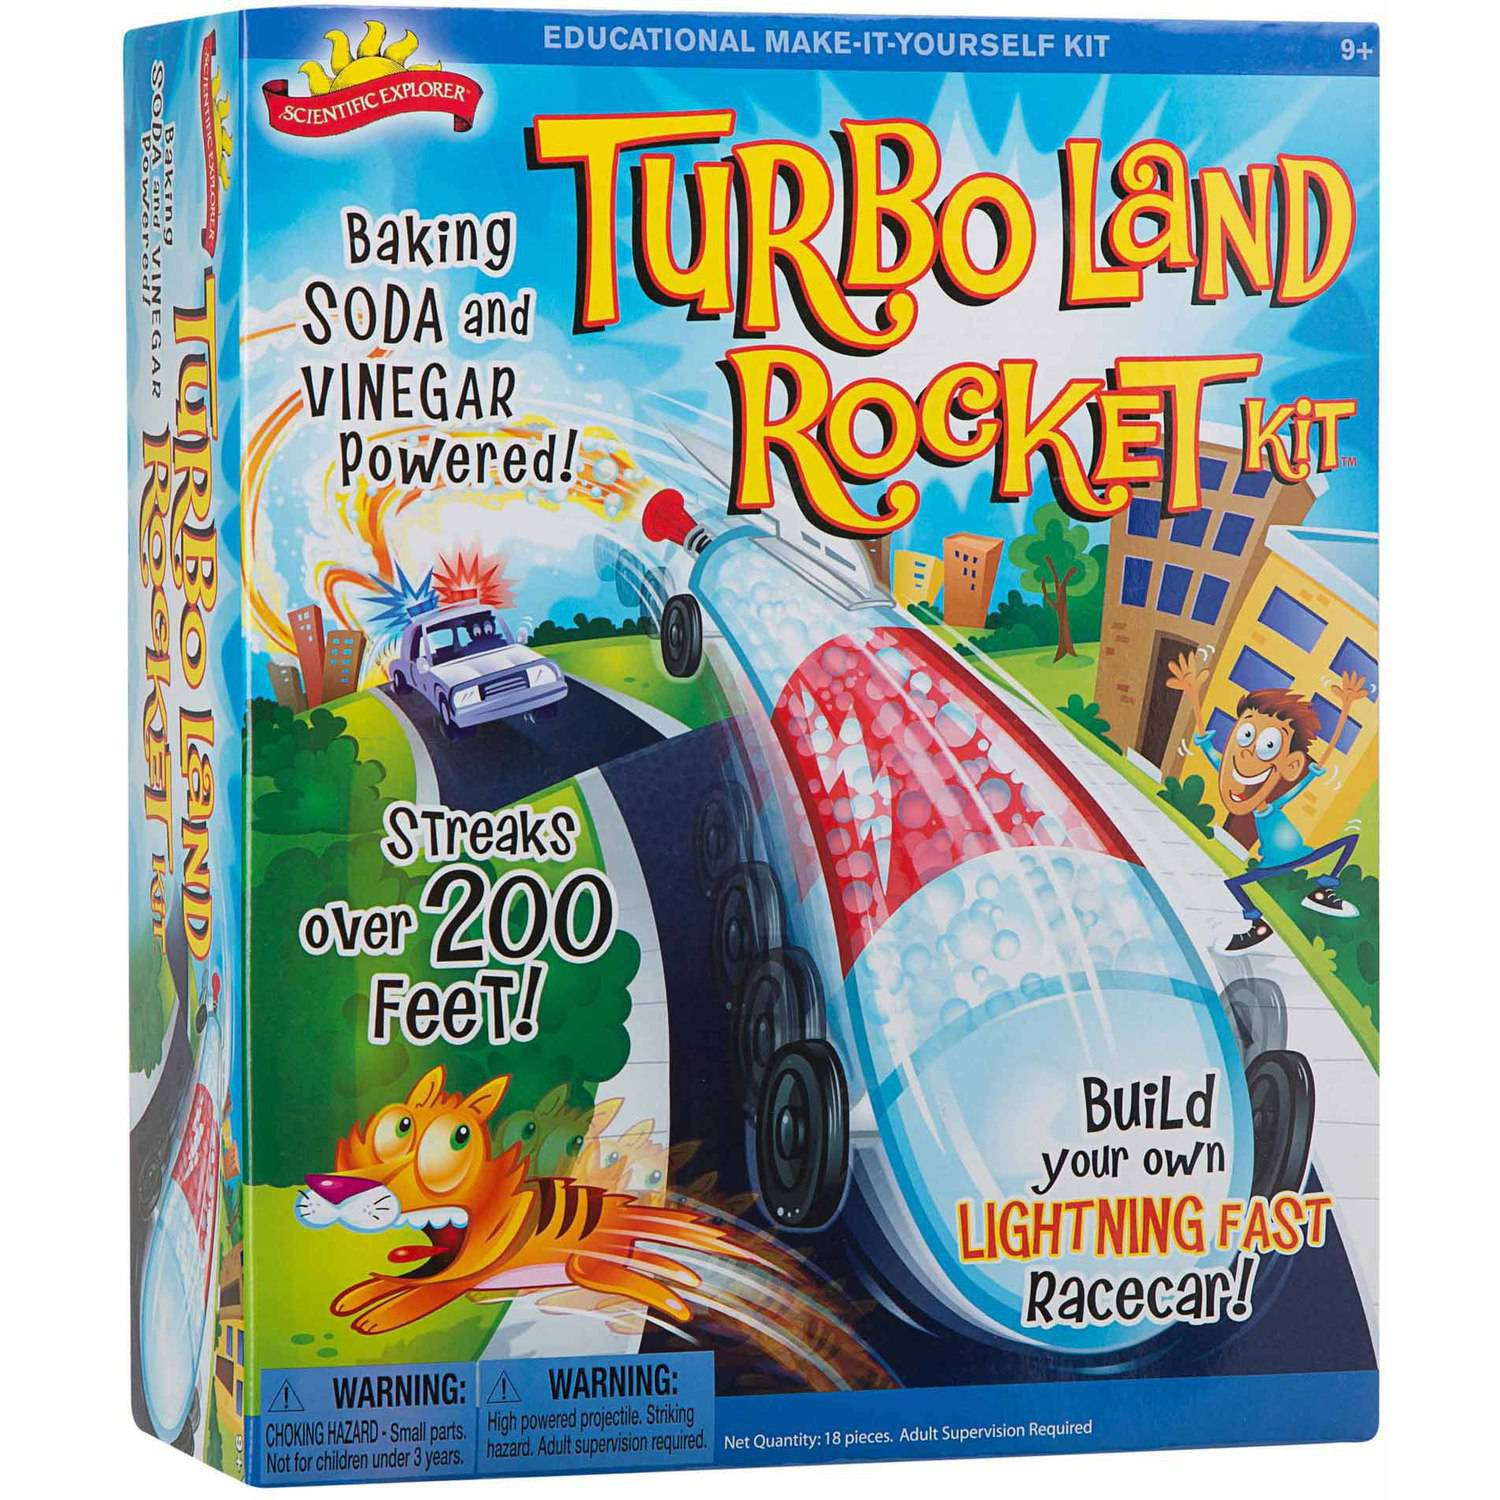 Scientific Explorer Turbo Land Rocket